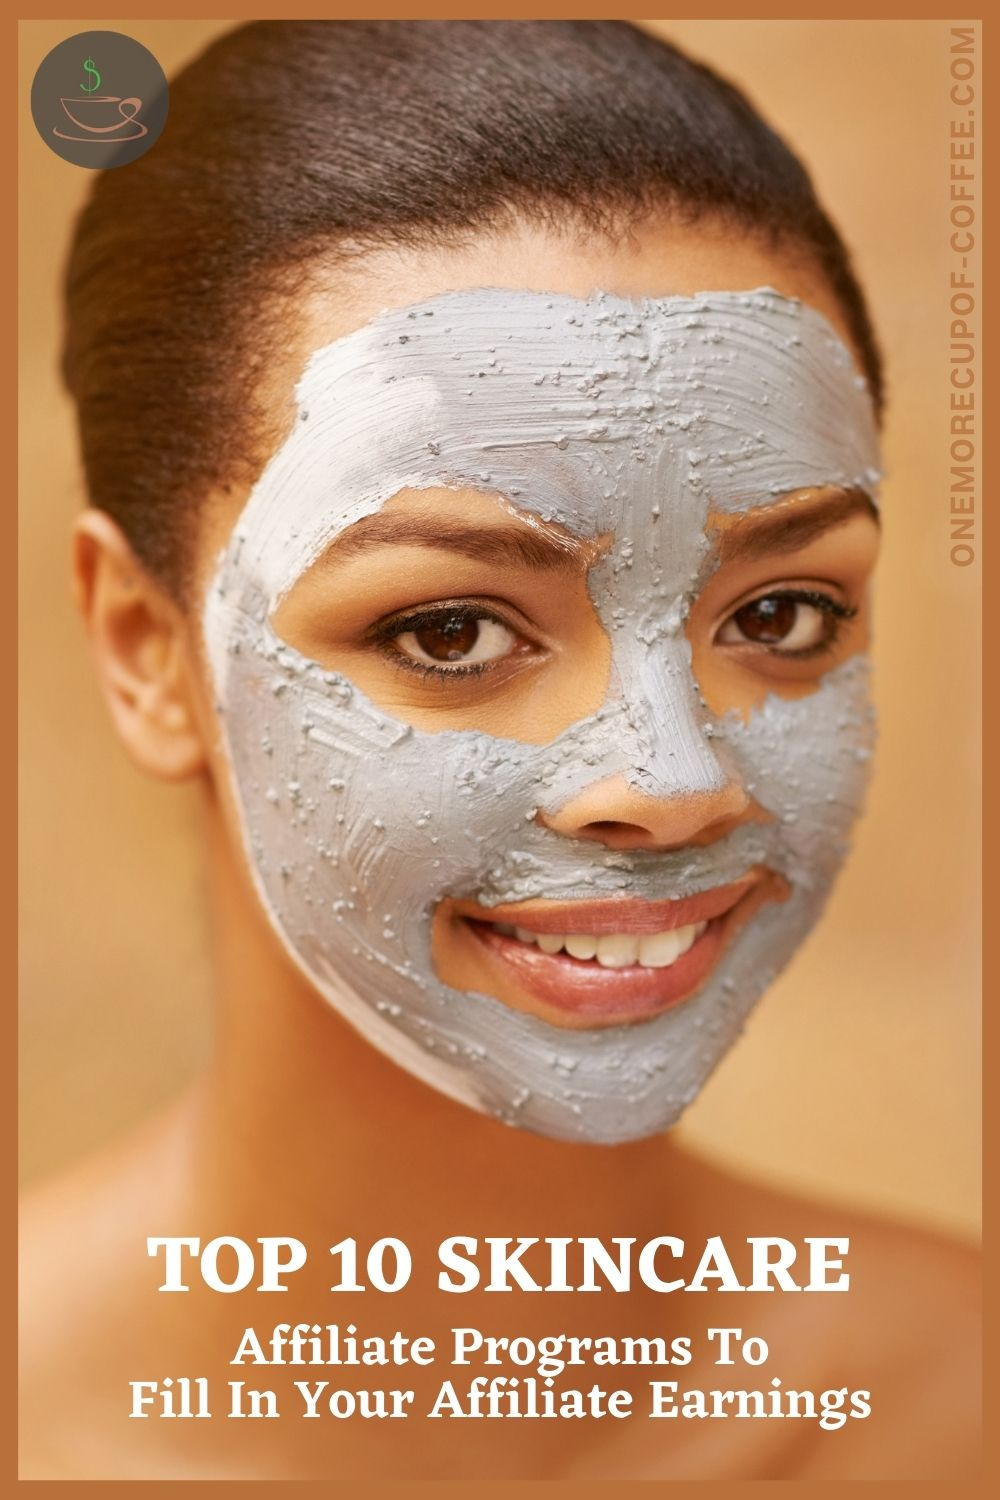 closeup image of a smiling black woman's face with clay mask, with text overlay